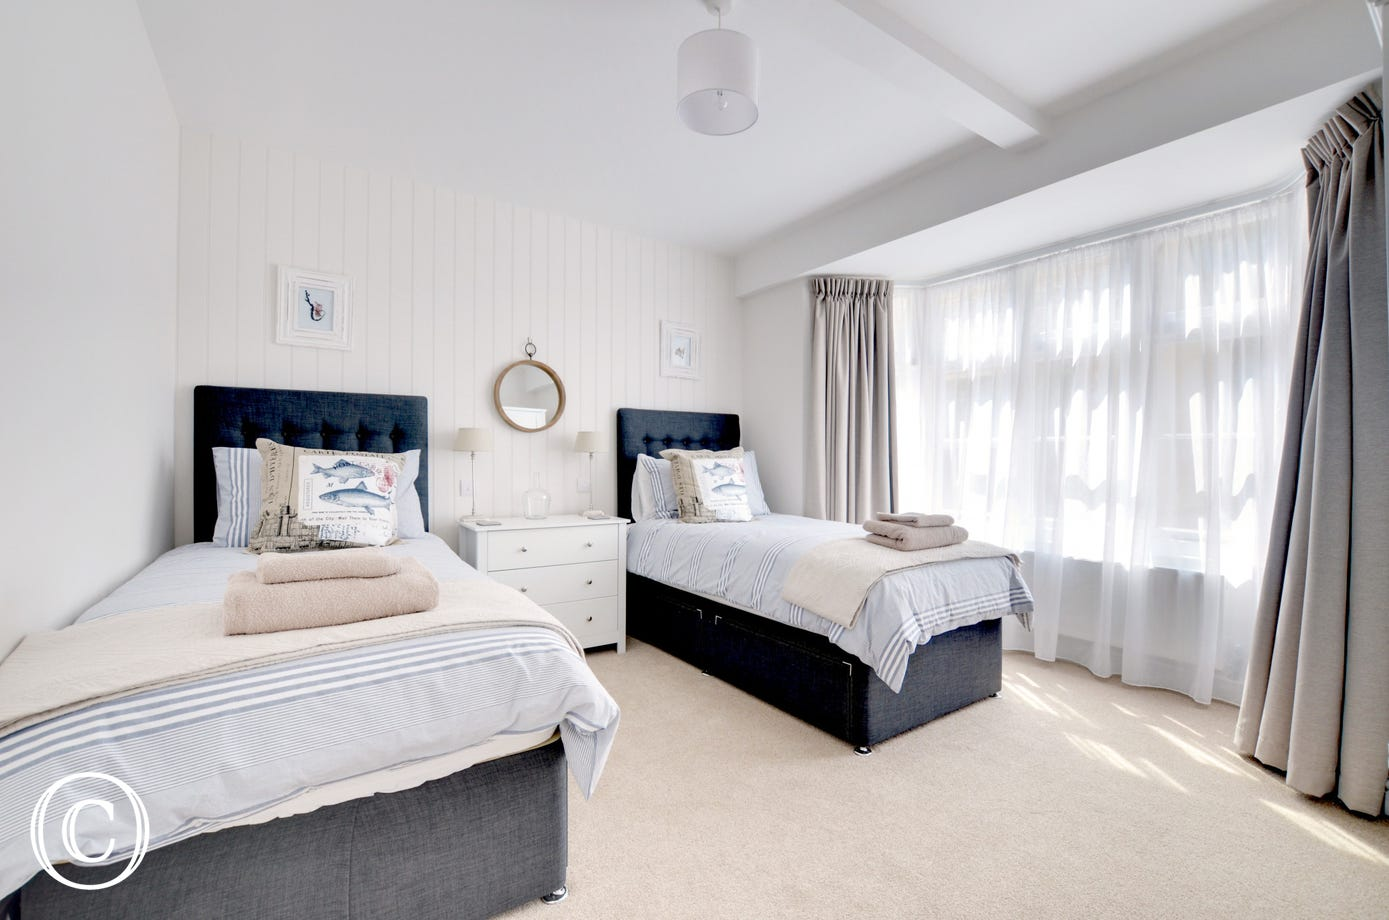 Bright and airy twin bedroom